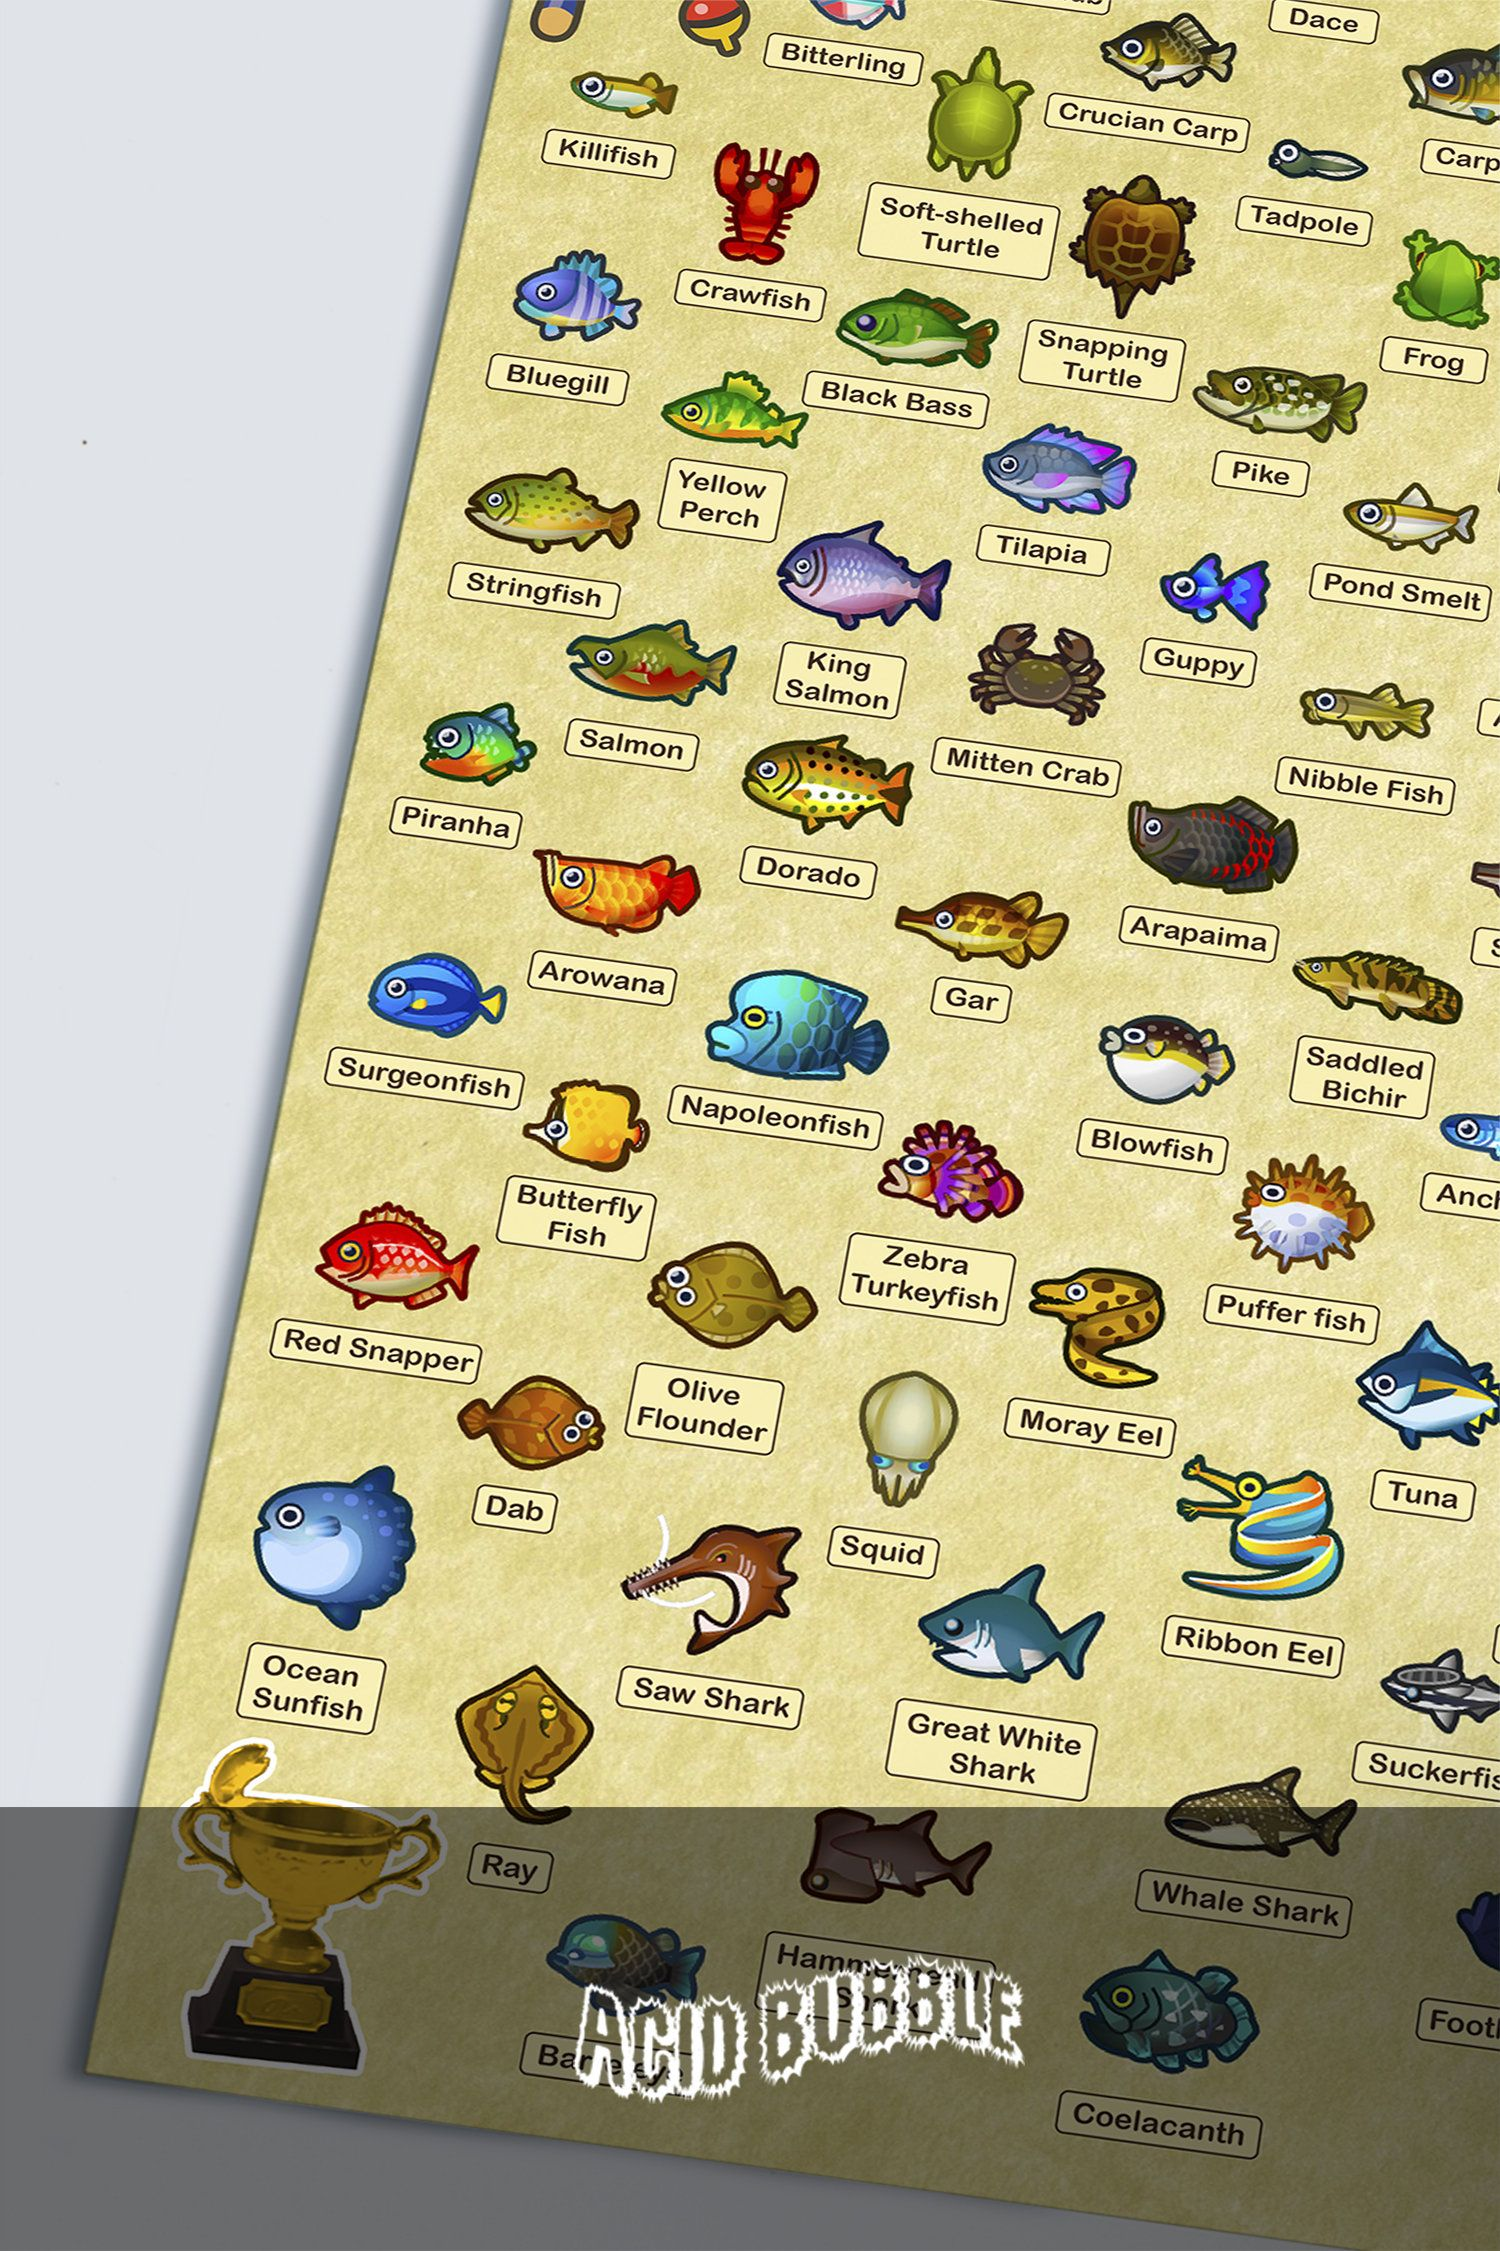 18++ Animal crossing bugs and fish ideas